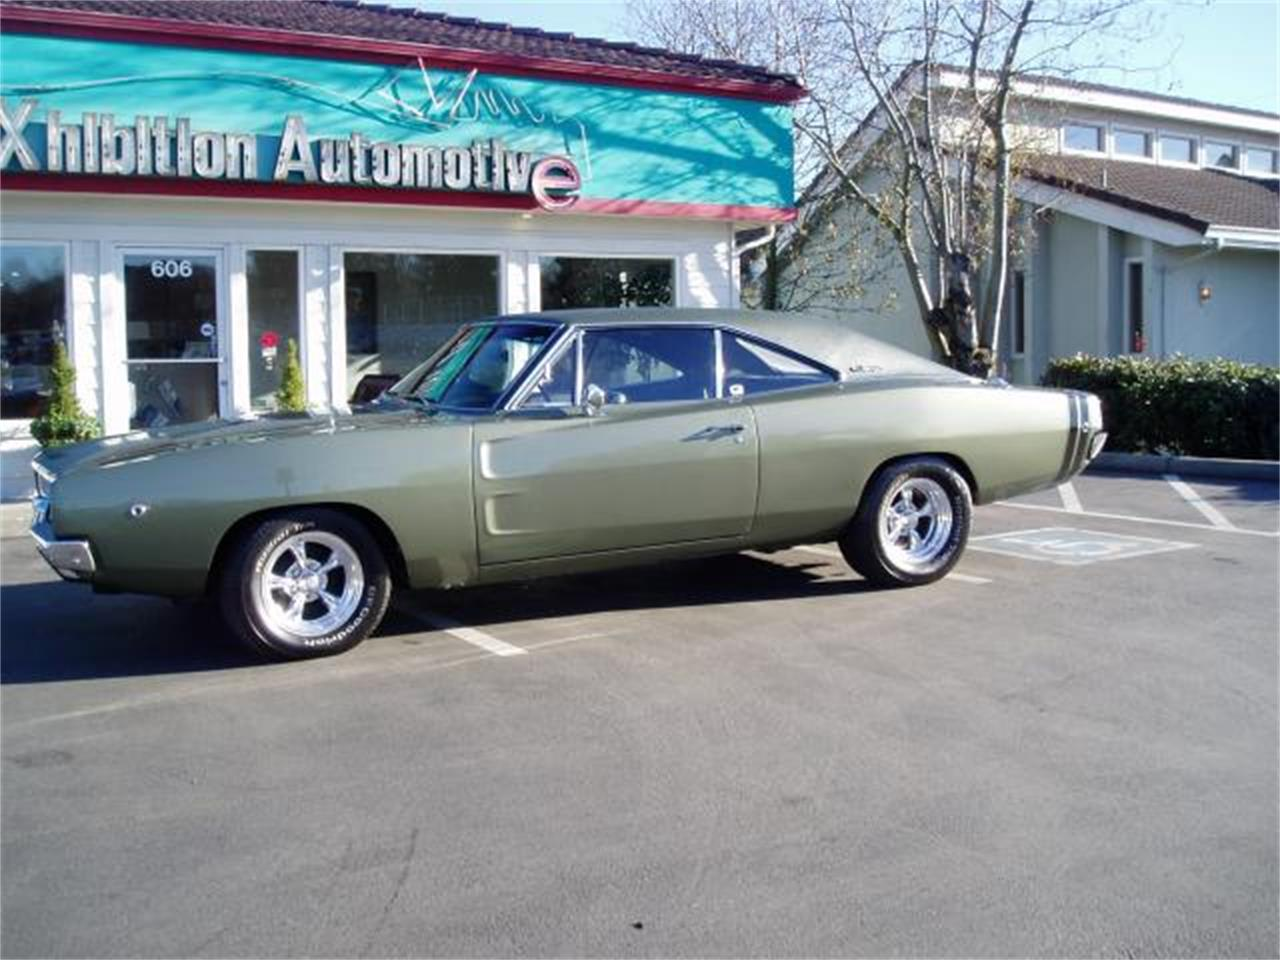 1968 dodge charger r t for sale classiccars com cc 1235181 1968 dodge charger r t for sale